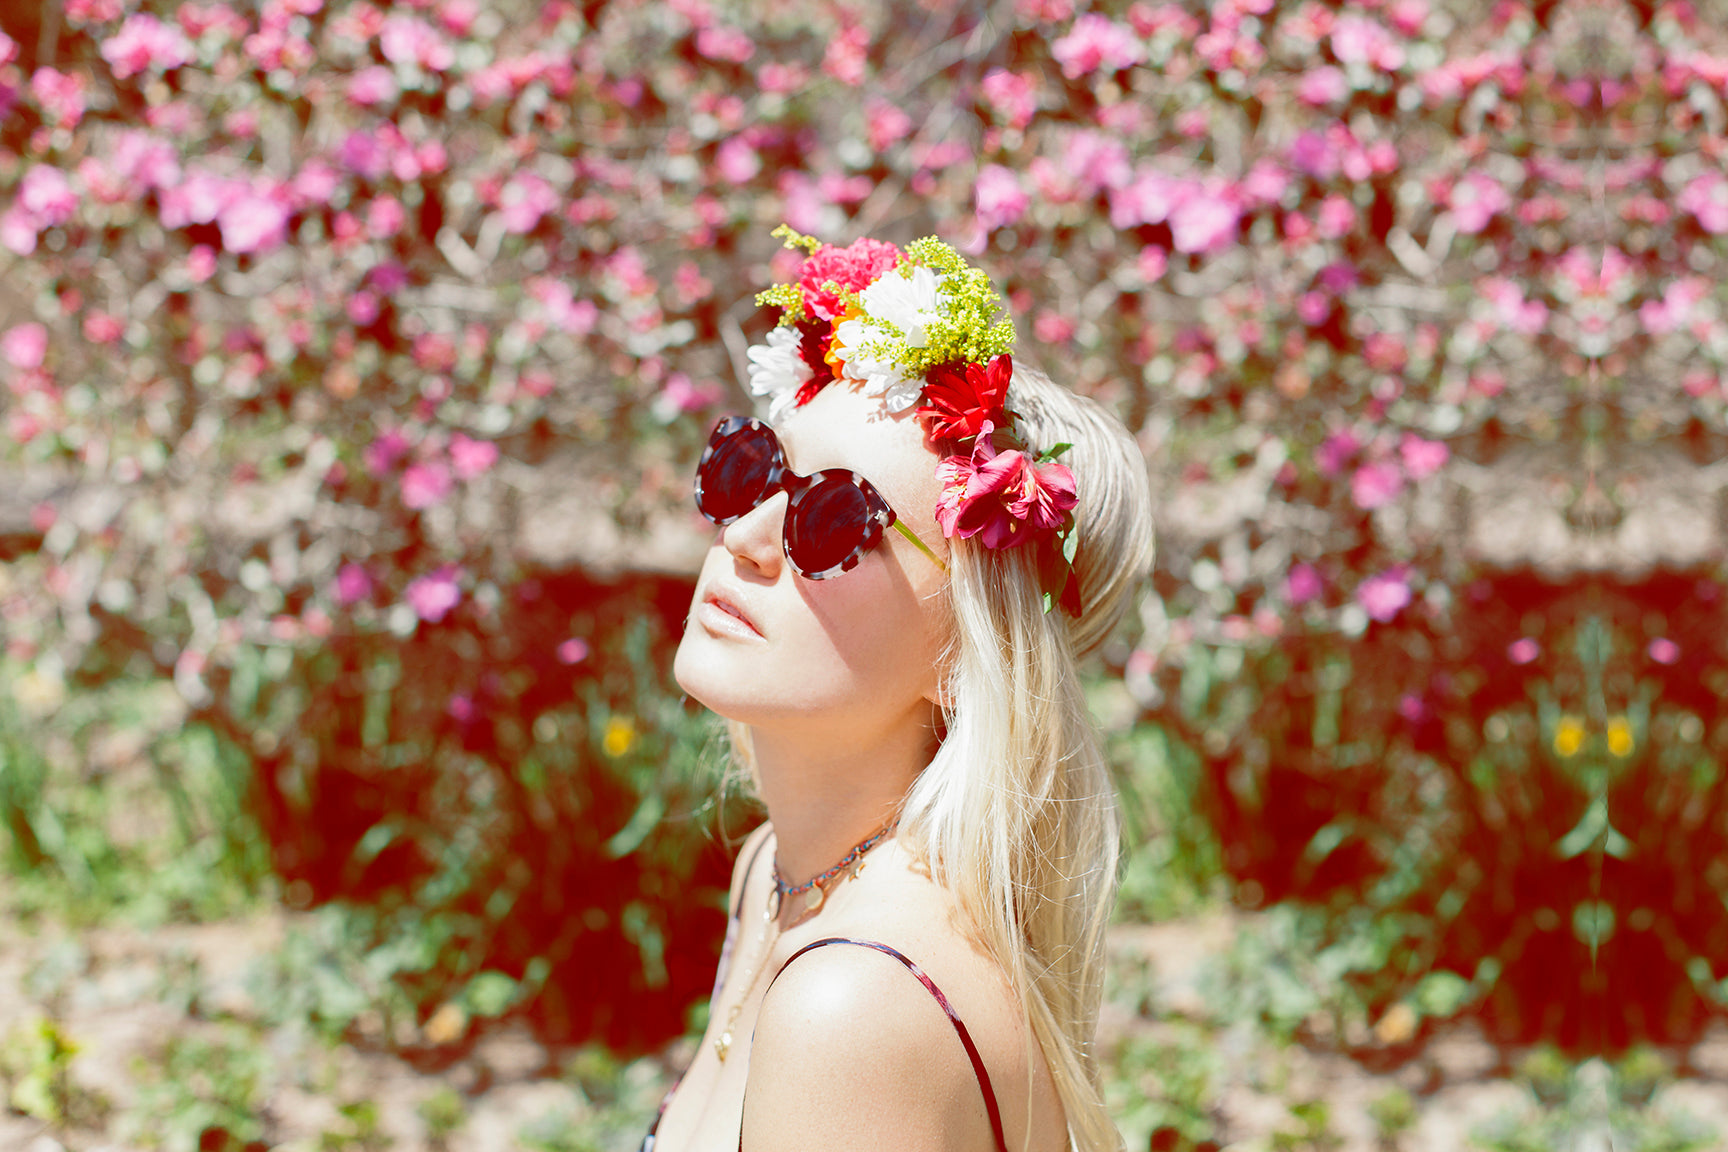 How to make a flower crown tags discoverflower crownshome baseinspires life magsakara lifesummer izmirmasajfo